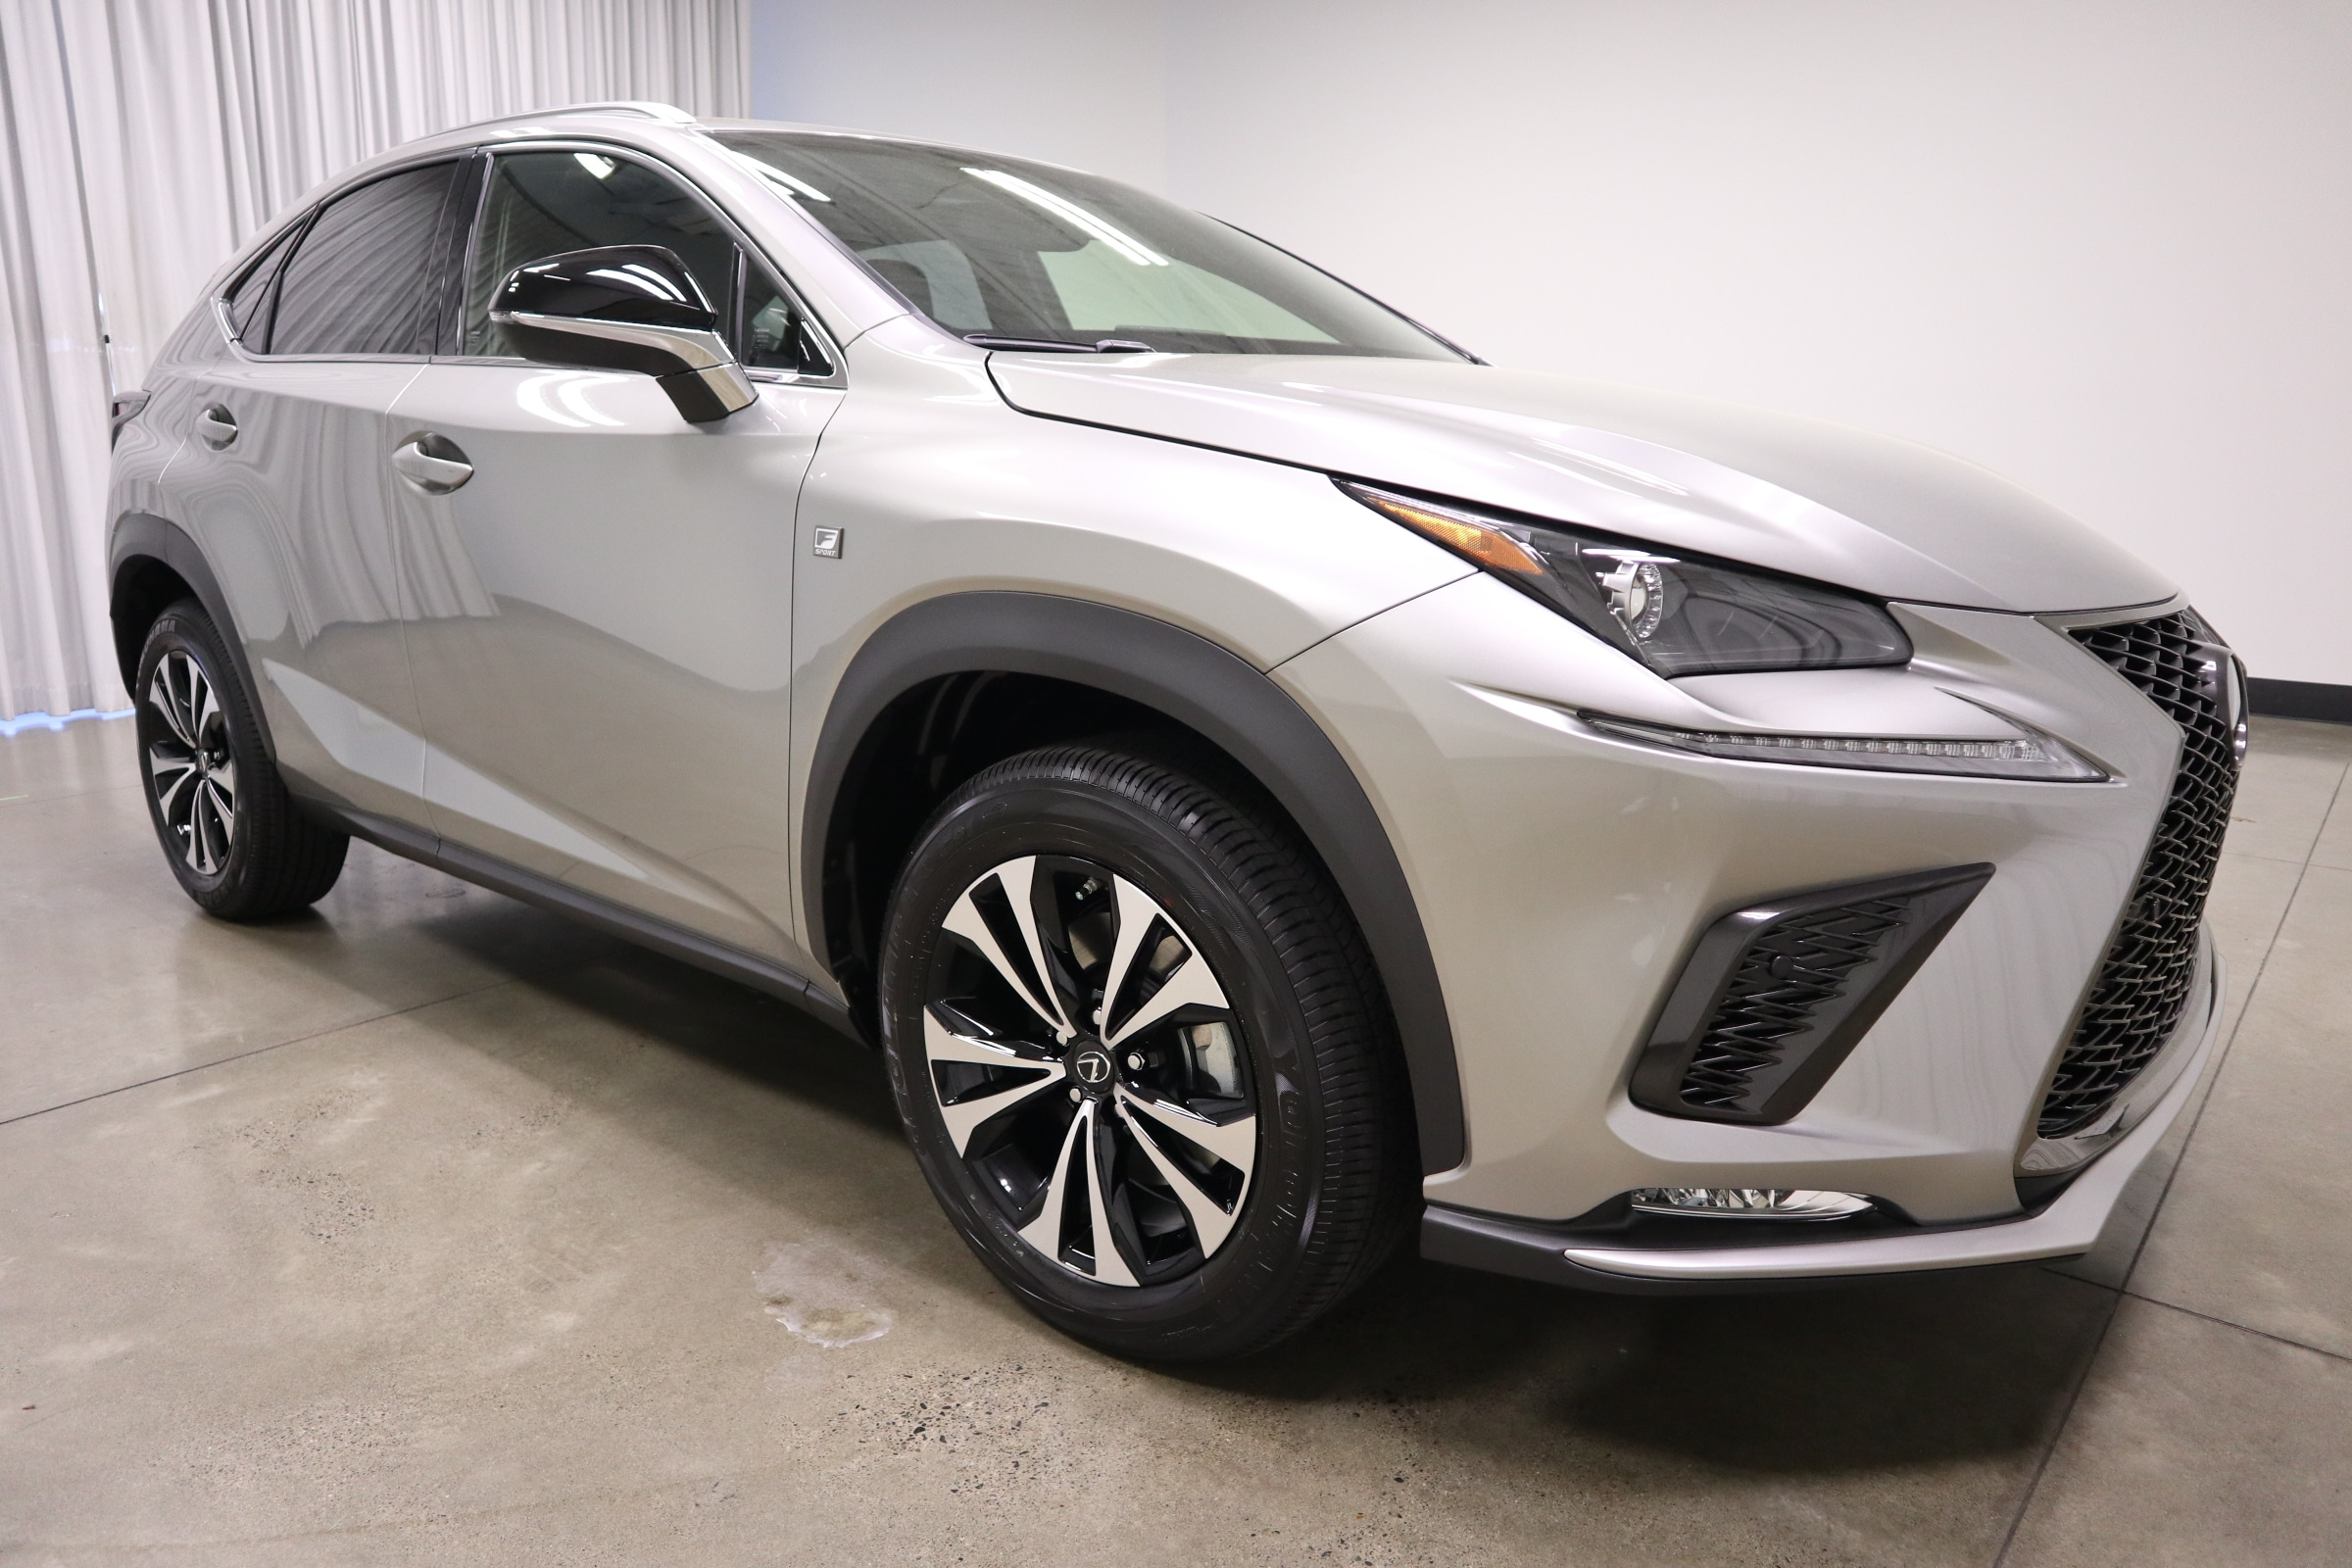 New 2019 LEXUS NX 300 For Sale or Lease in Reno, NV near